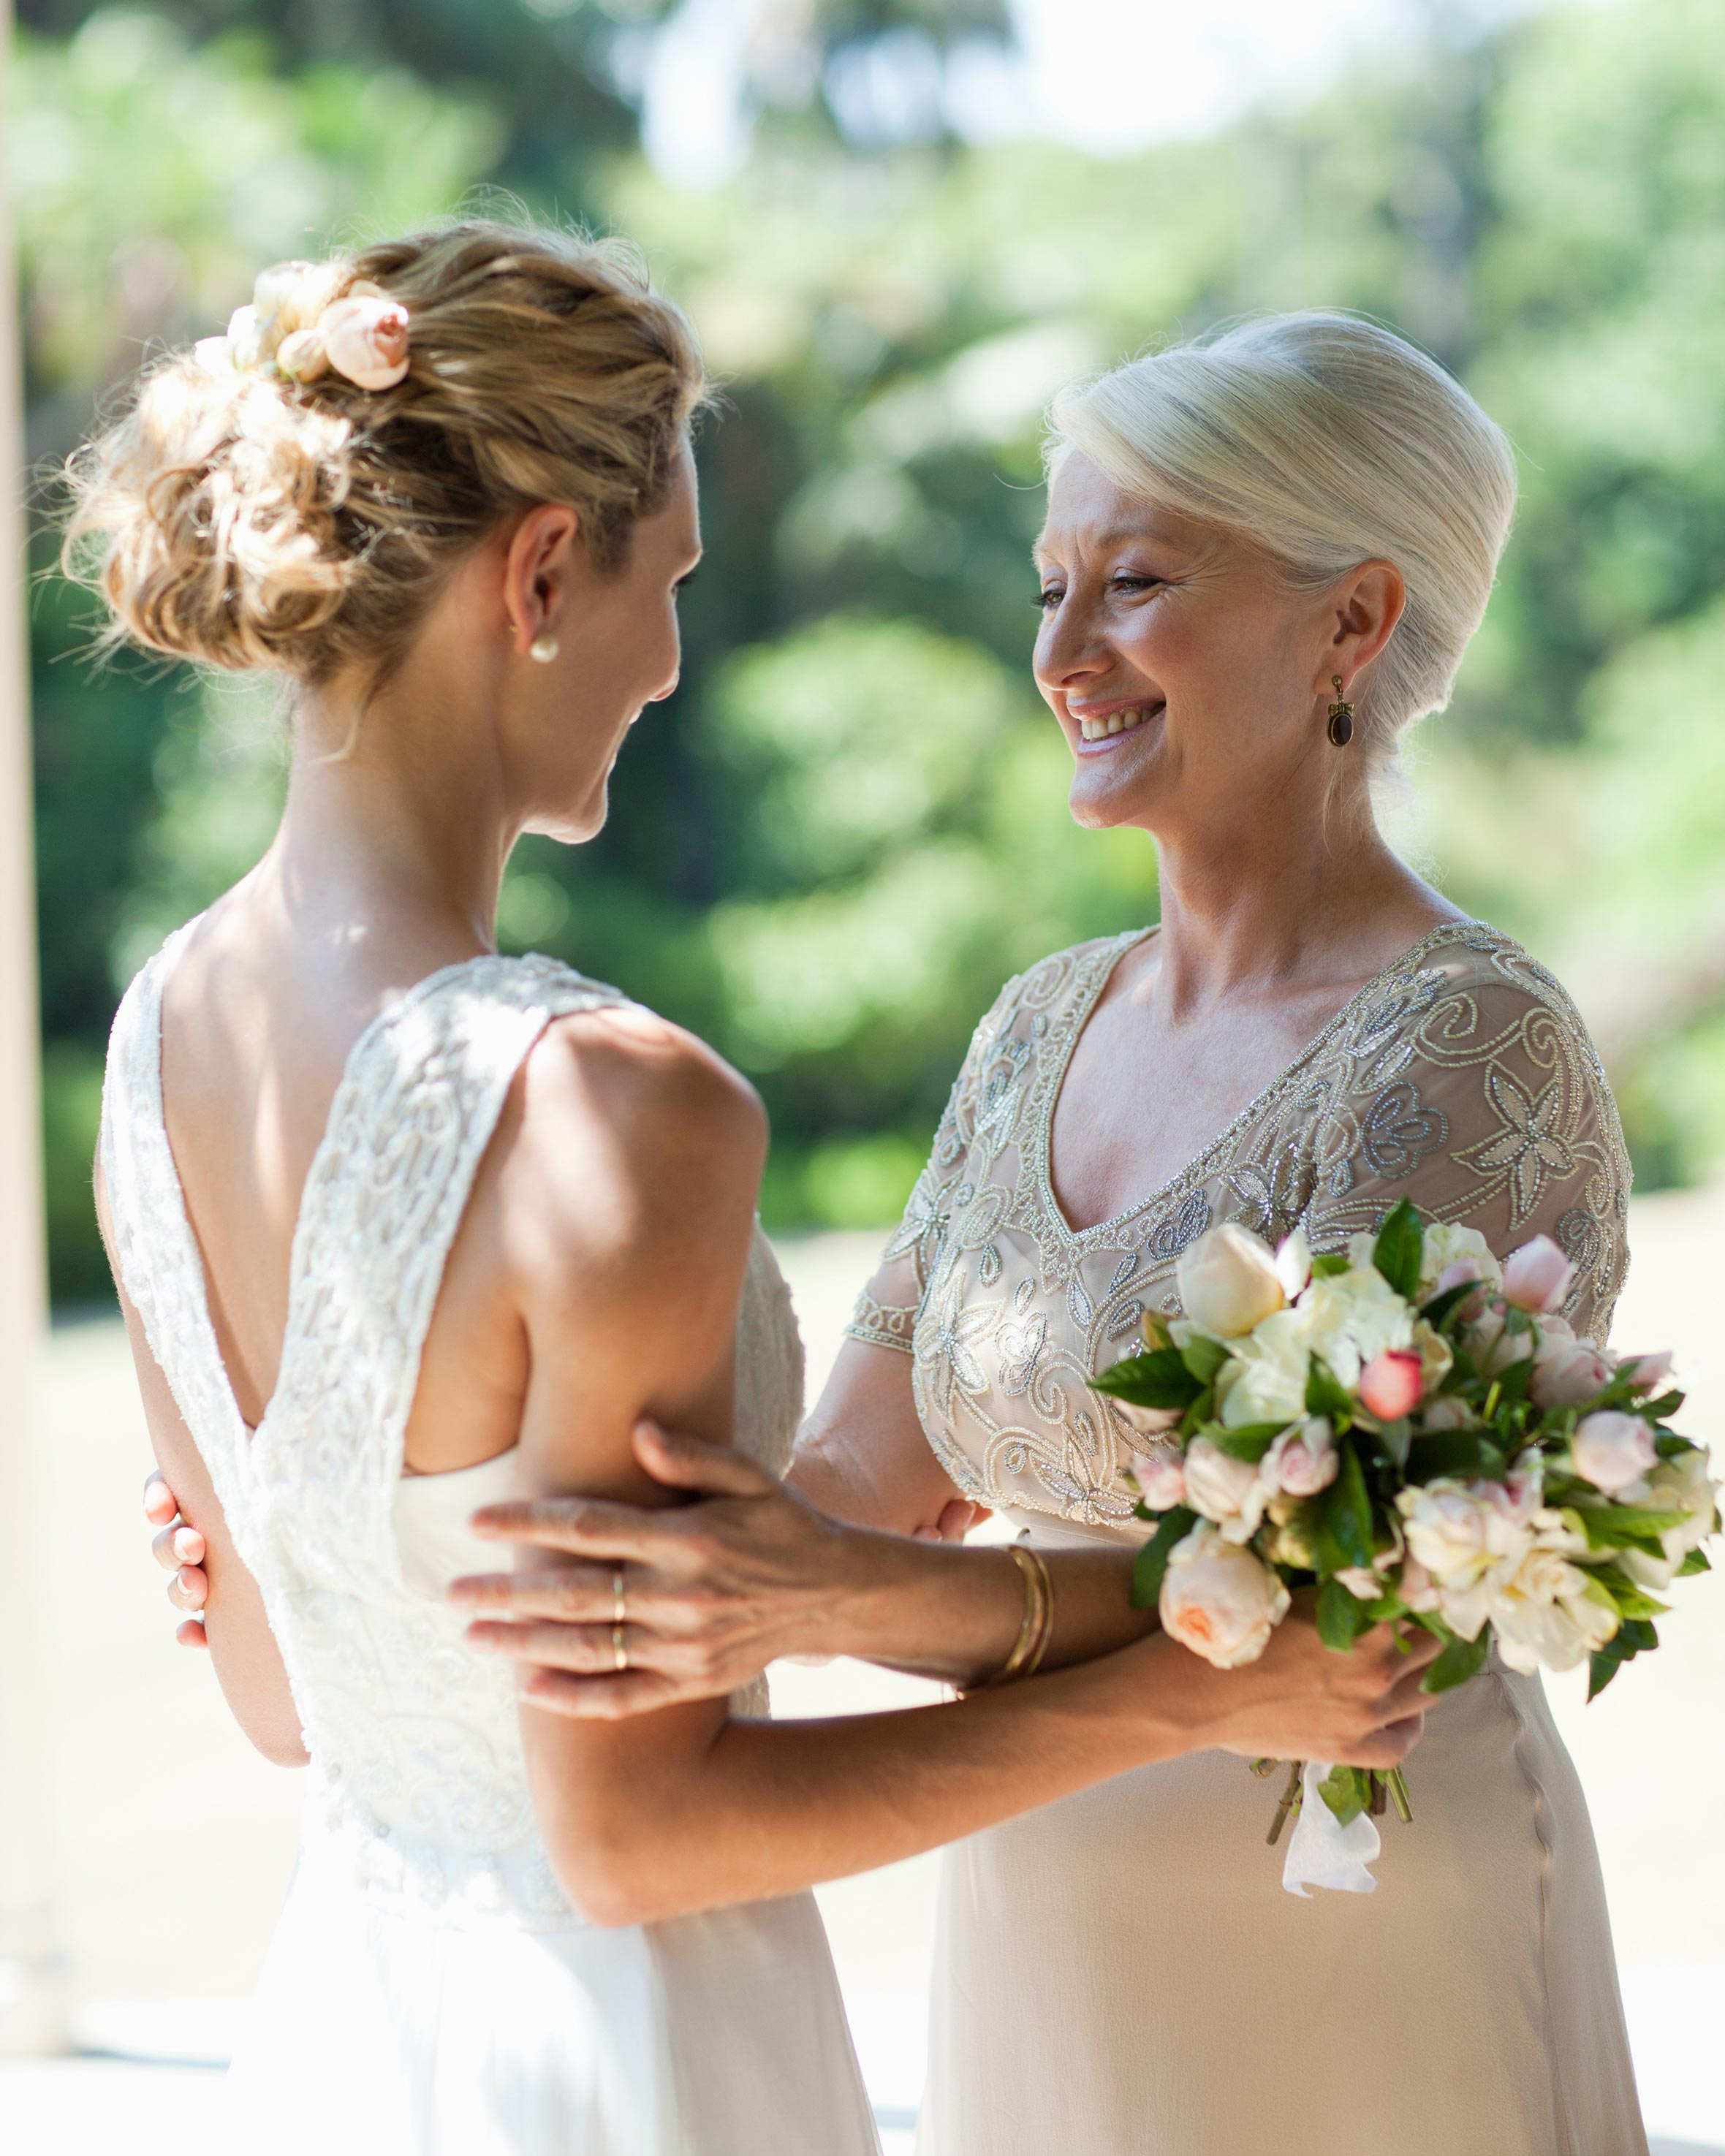 For the Moms: How to Choose a Flattering Lip Color for Your Child's Wedding Day